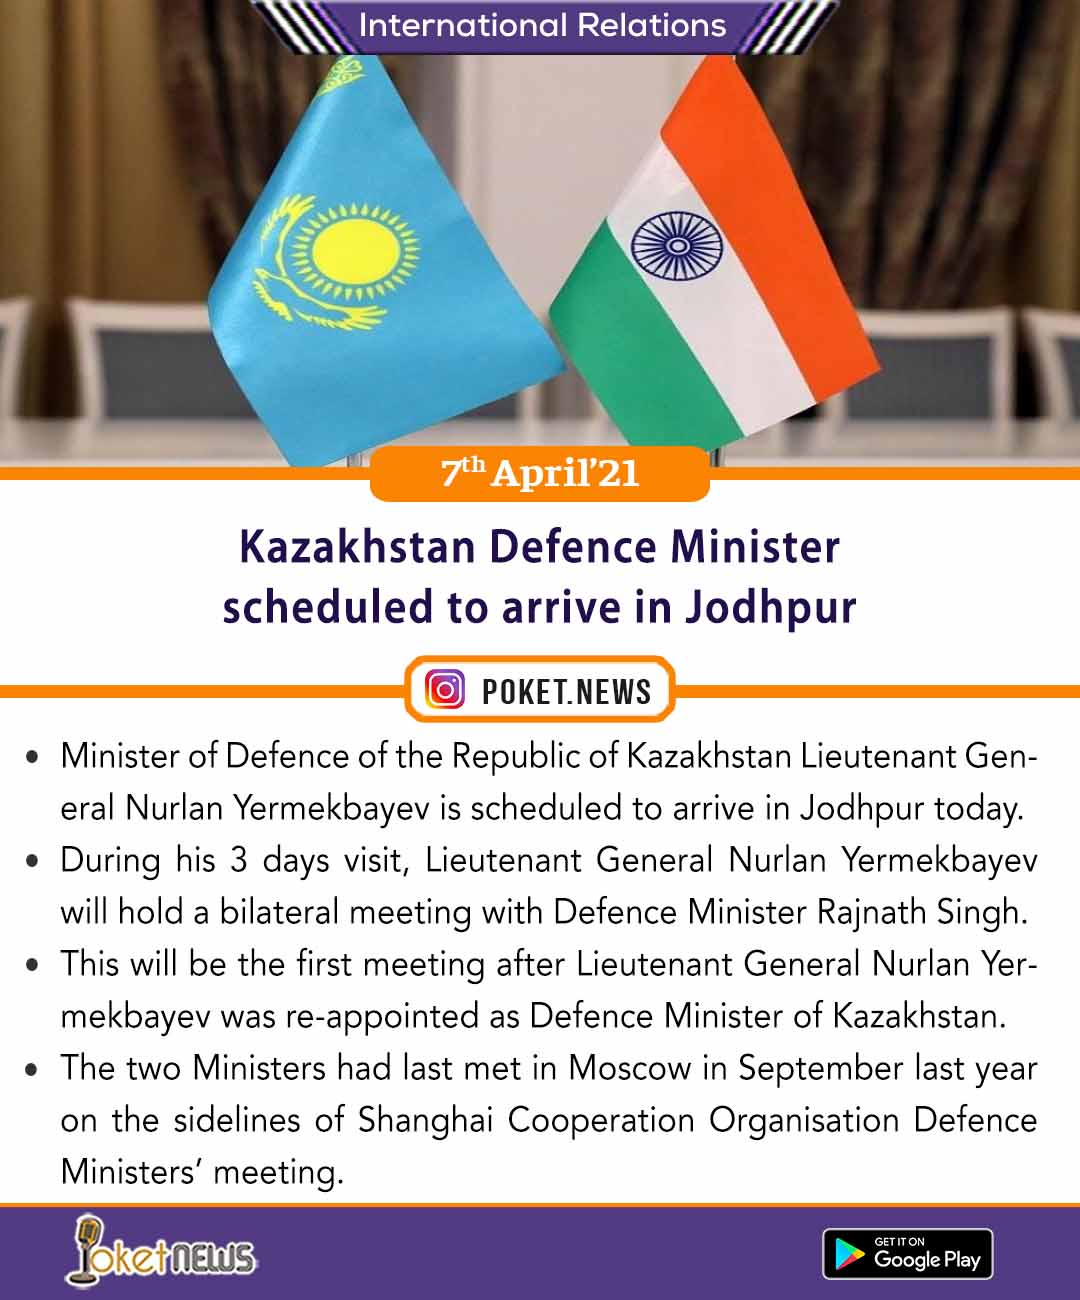 Kazakhstan Defence Minister scheduled to arrive in Jodhpur